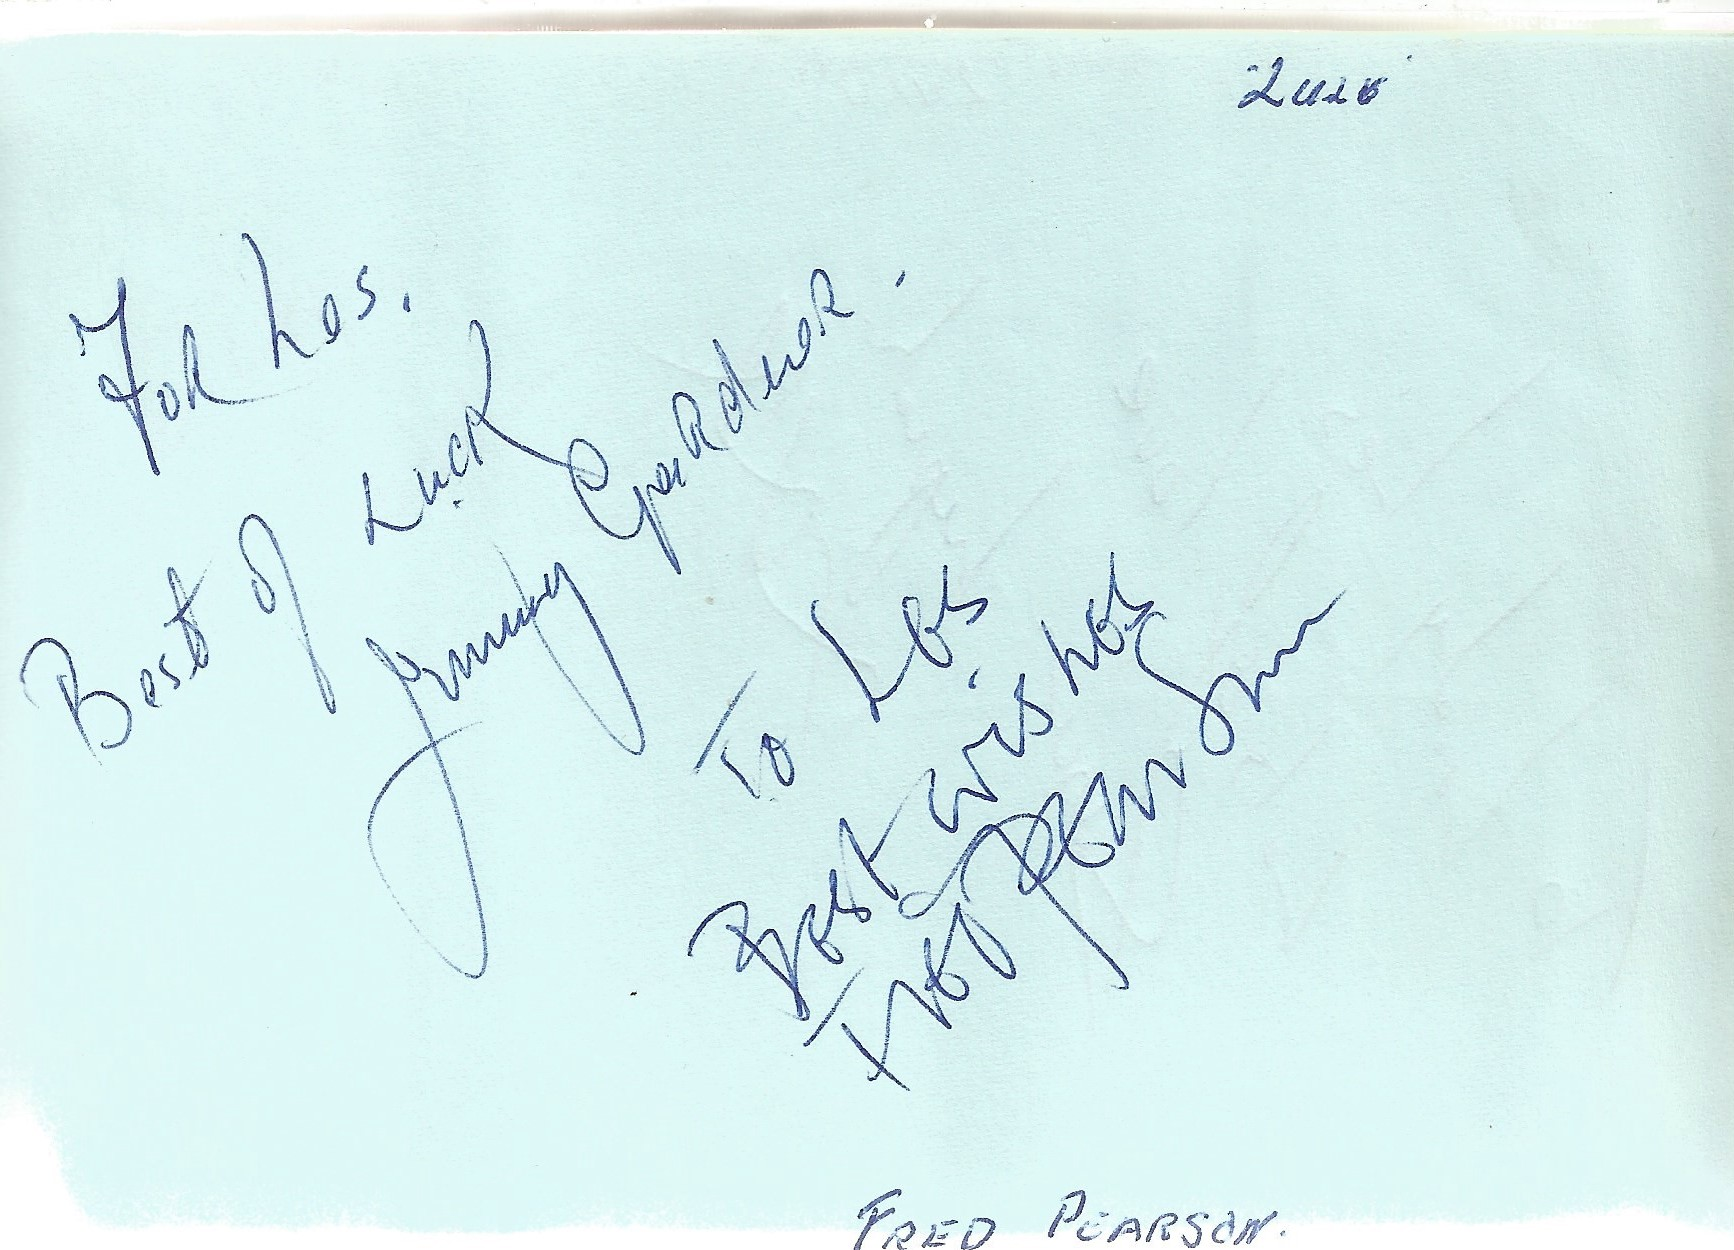 Red 6.5x4.5 Autograph book with 90 signatures including Tony Anholt, Peter Davison, Colin Baker, - Image 4 of 6